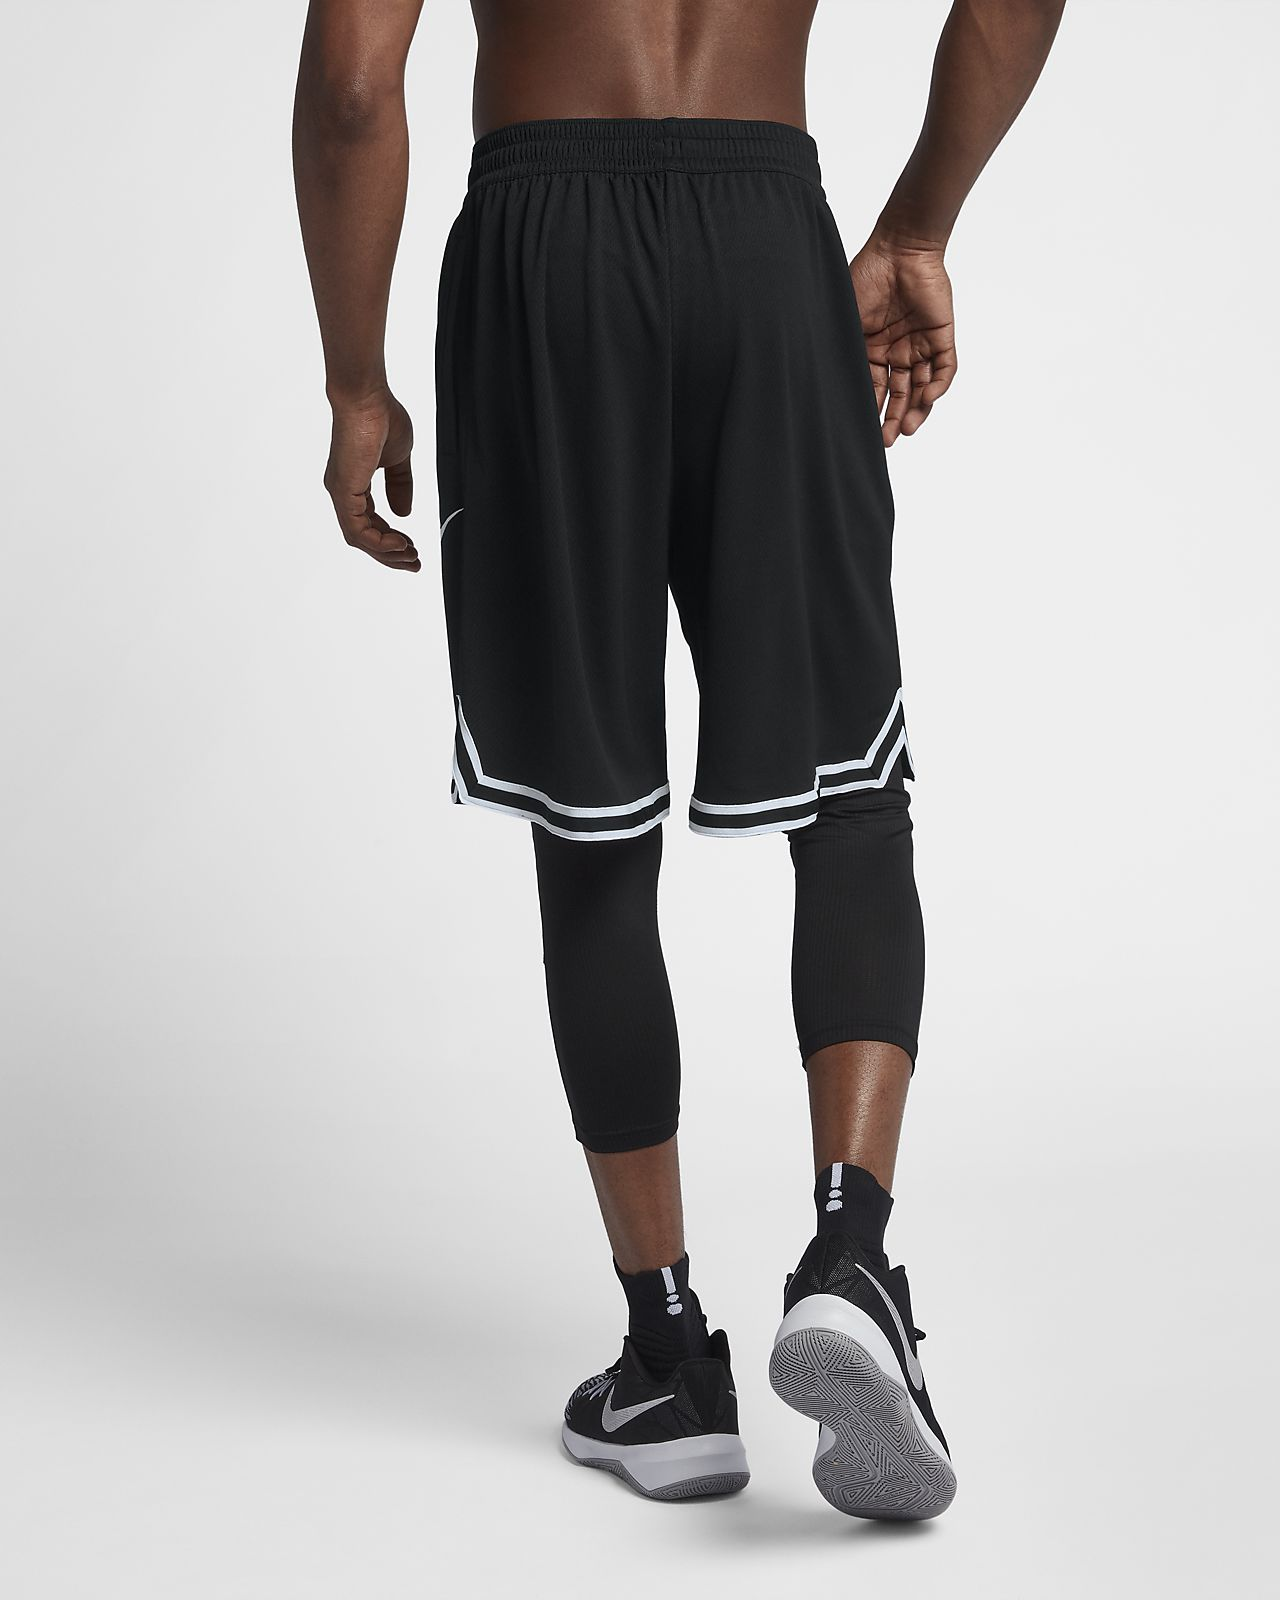 dfde3b39f78af5 Nike Dri-FIT DNA Men s Basketball Shorts. Nike.com AU